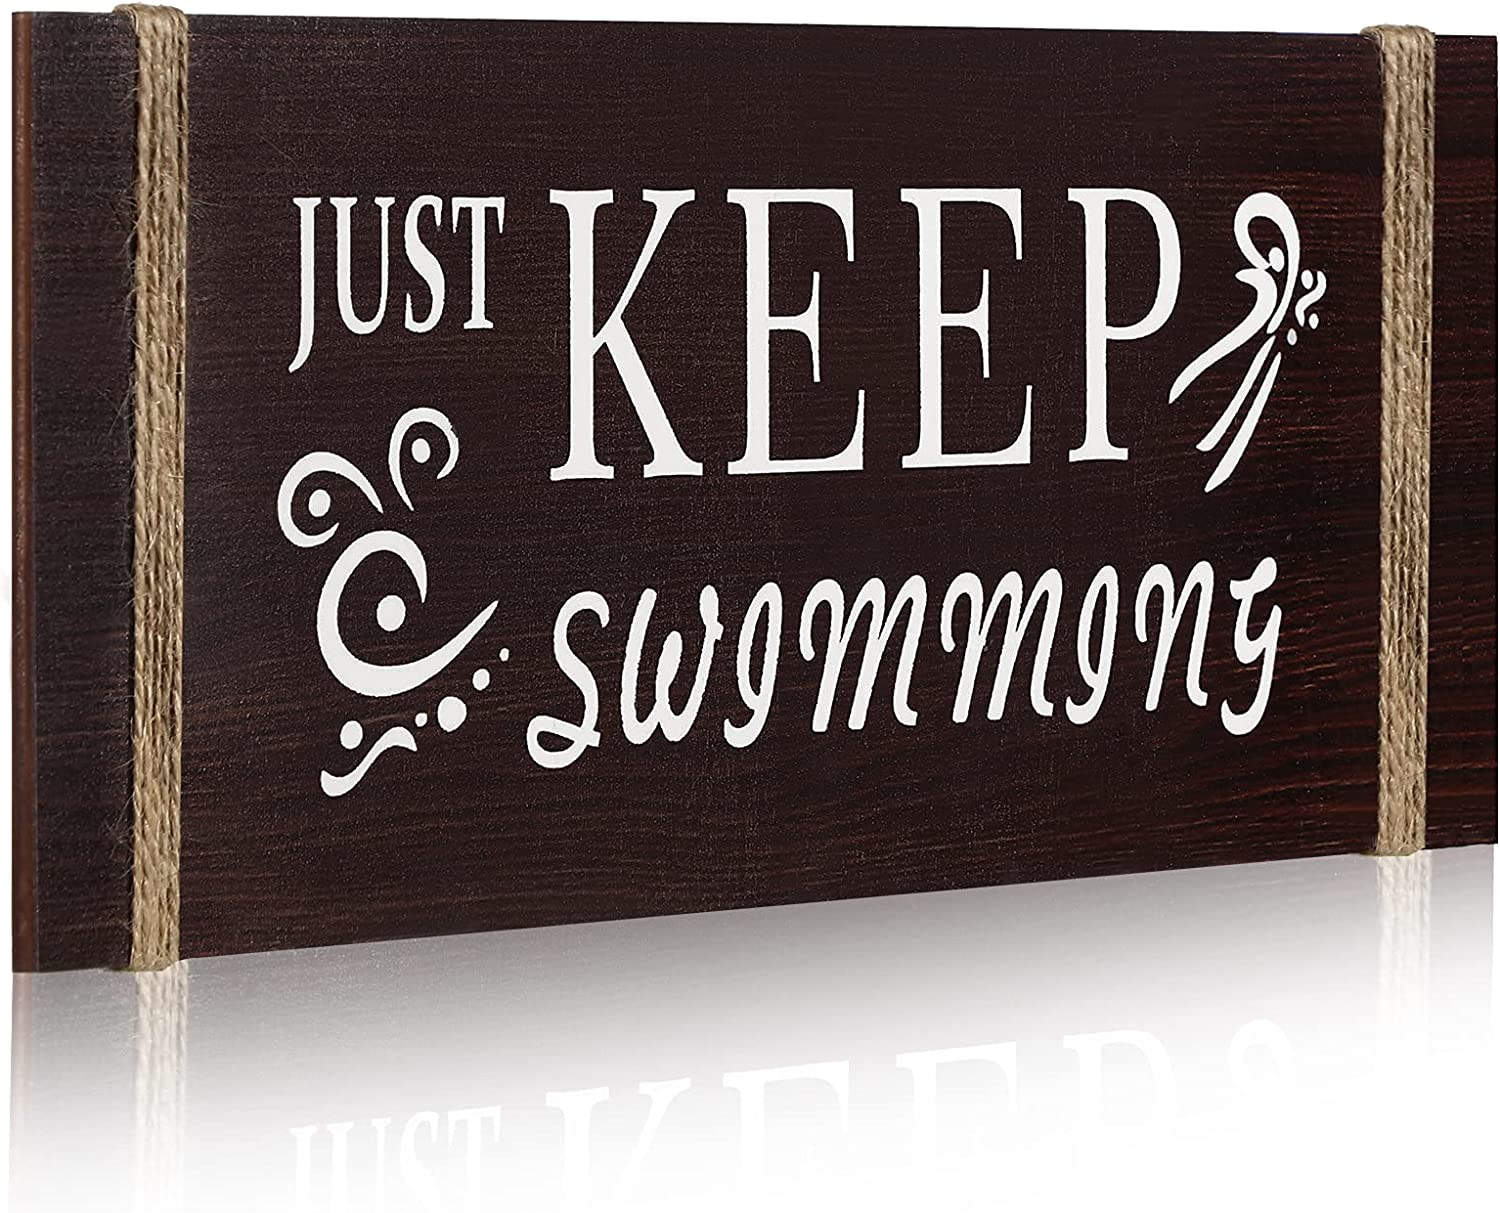 Just Keep swimming Wood Sign Rustic Wood Inspirational Wall Decor Rustic Wood Wall Sign Decoration Wooden Wall Art Sign for Bedroom, Wall Decor for Living Room Kitchen